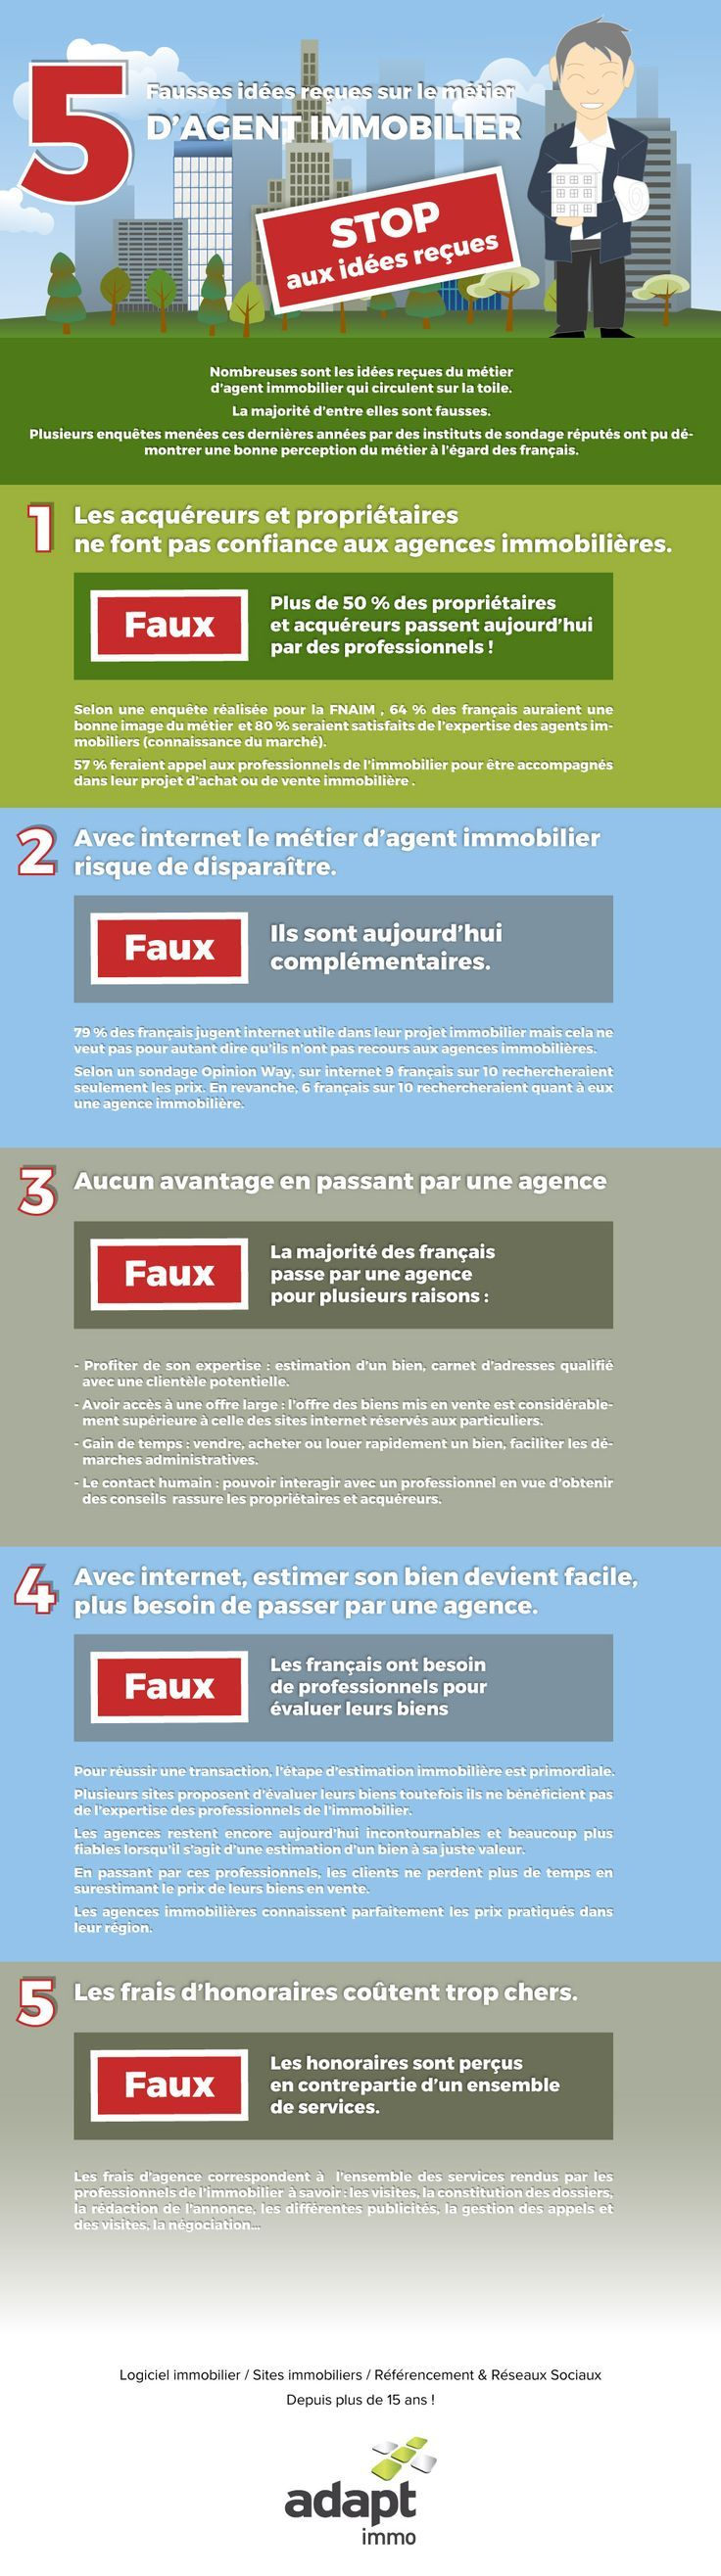 Business Infographic Infographie 5 Fausses Idees Recues Du Metier D Agent Immobilier Real Infographicnow Com Your Number One Source For Daily I Business Infographic Learning Time Infographic